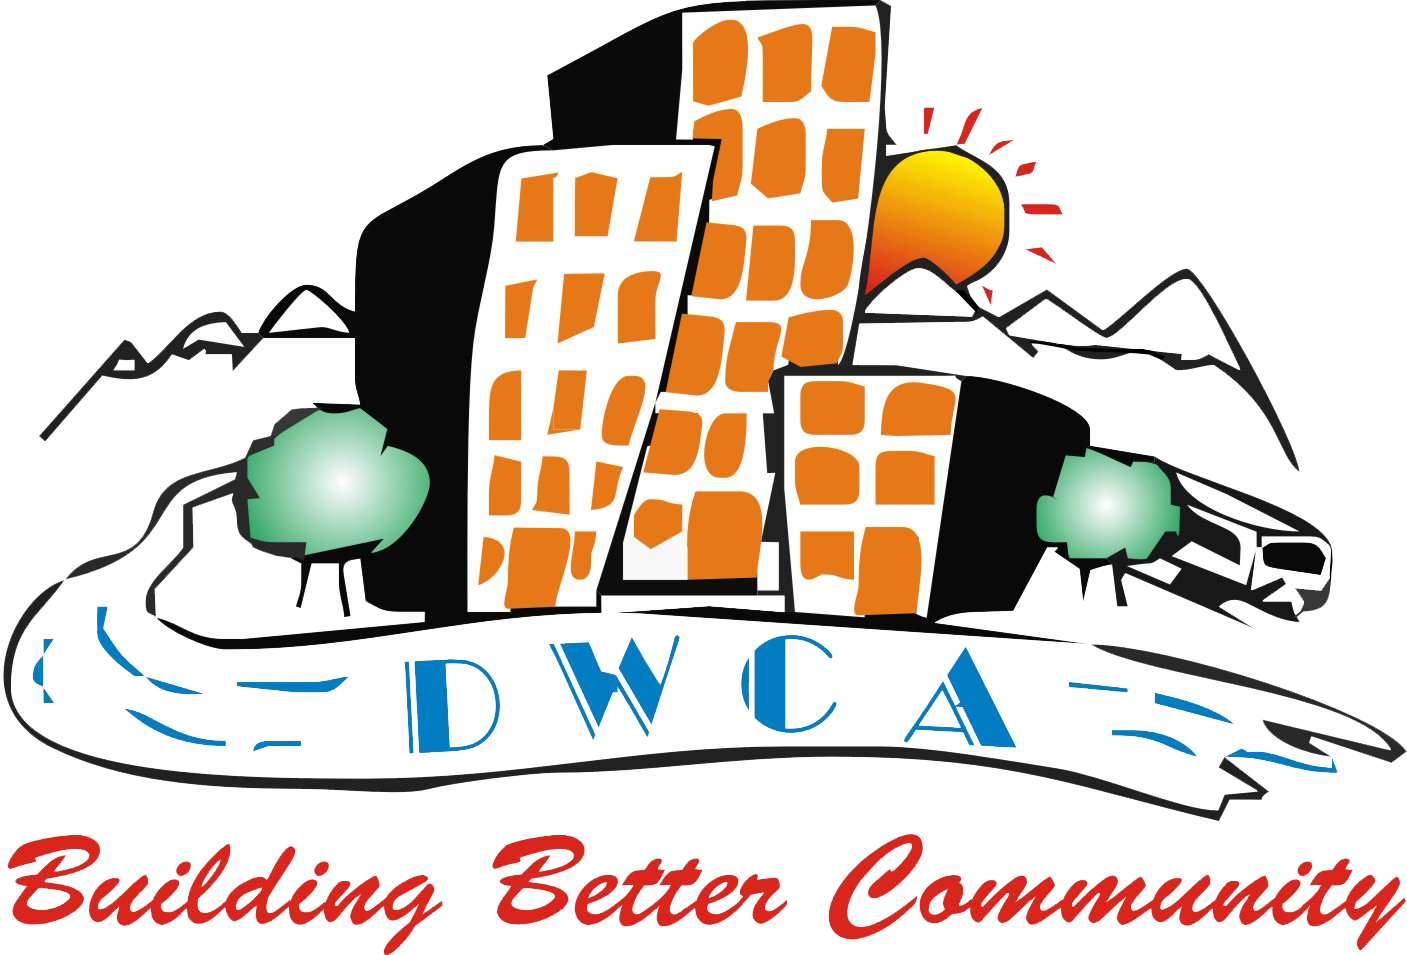 Downtown West Community Association